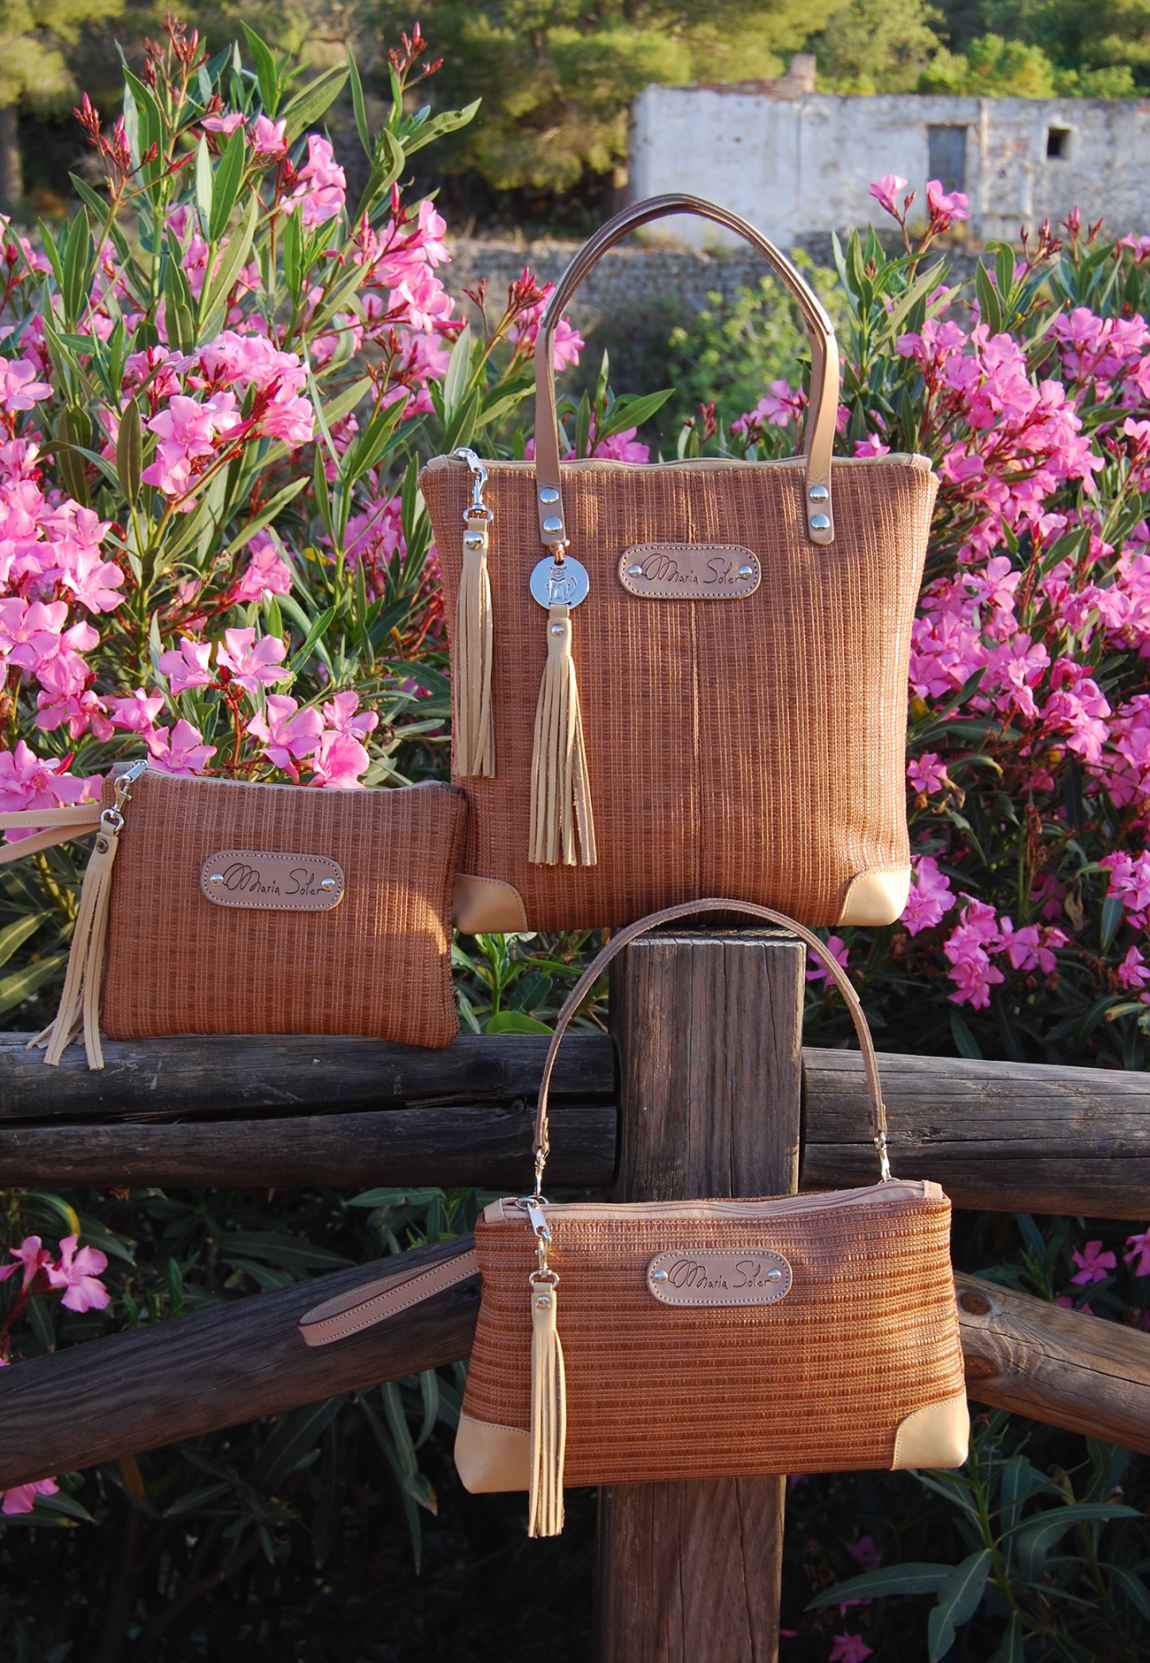 Picture ECO-RAFIA Bag, by Maria Soler